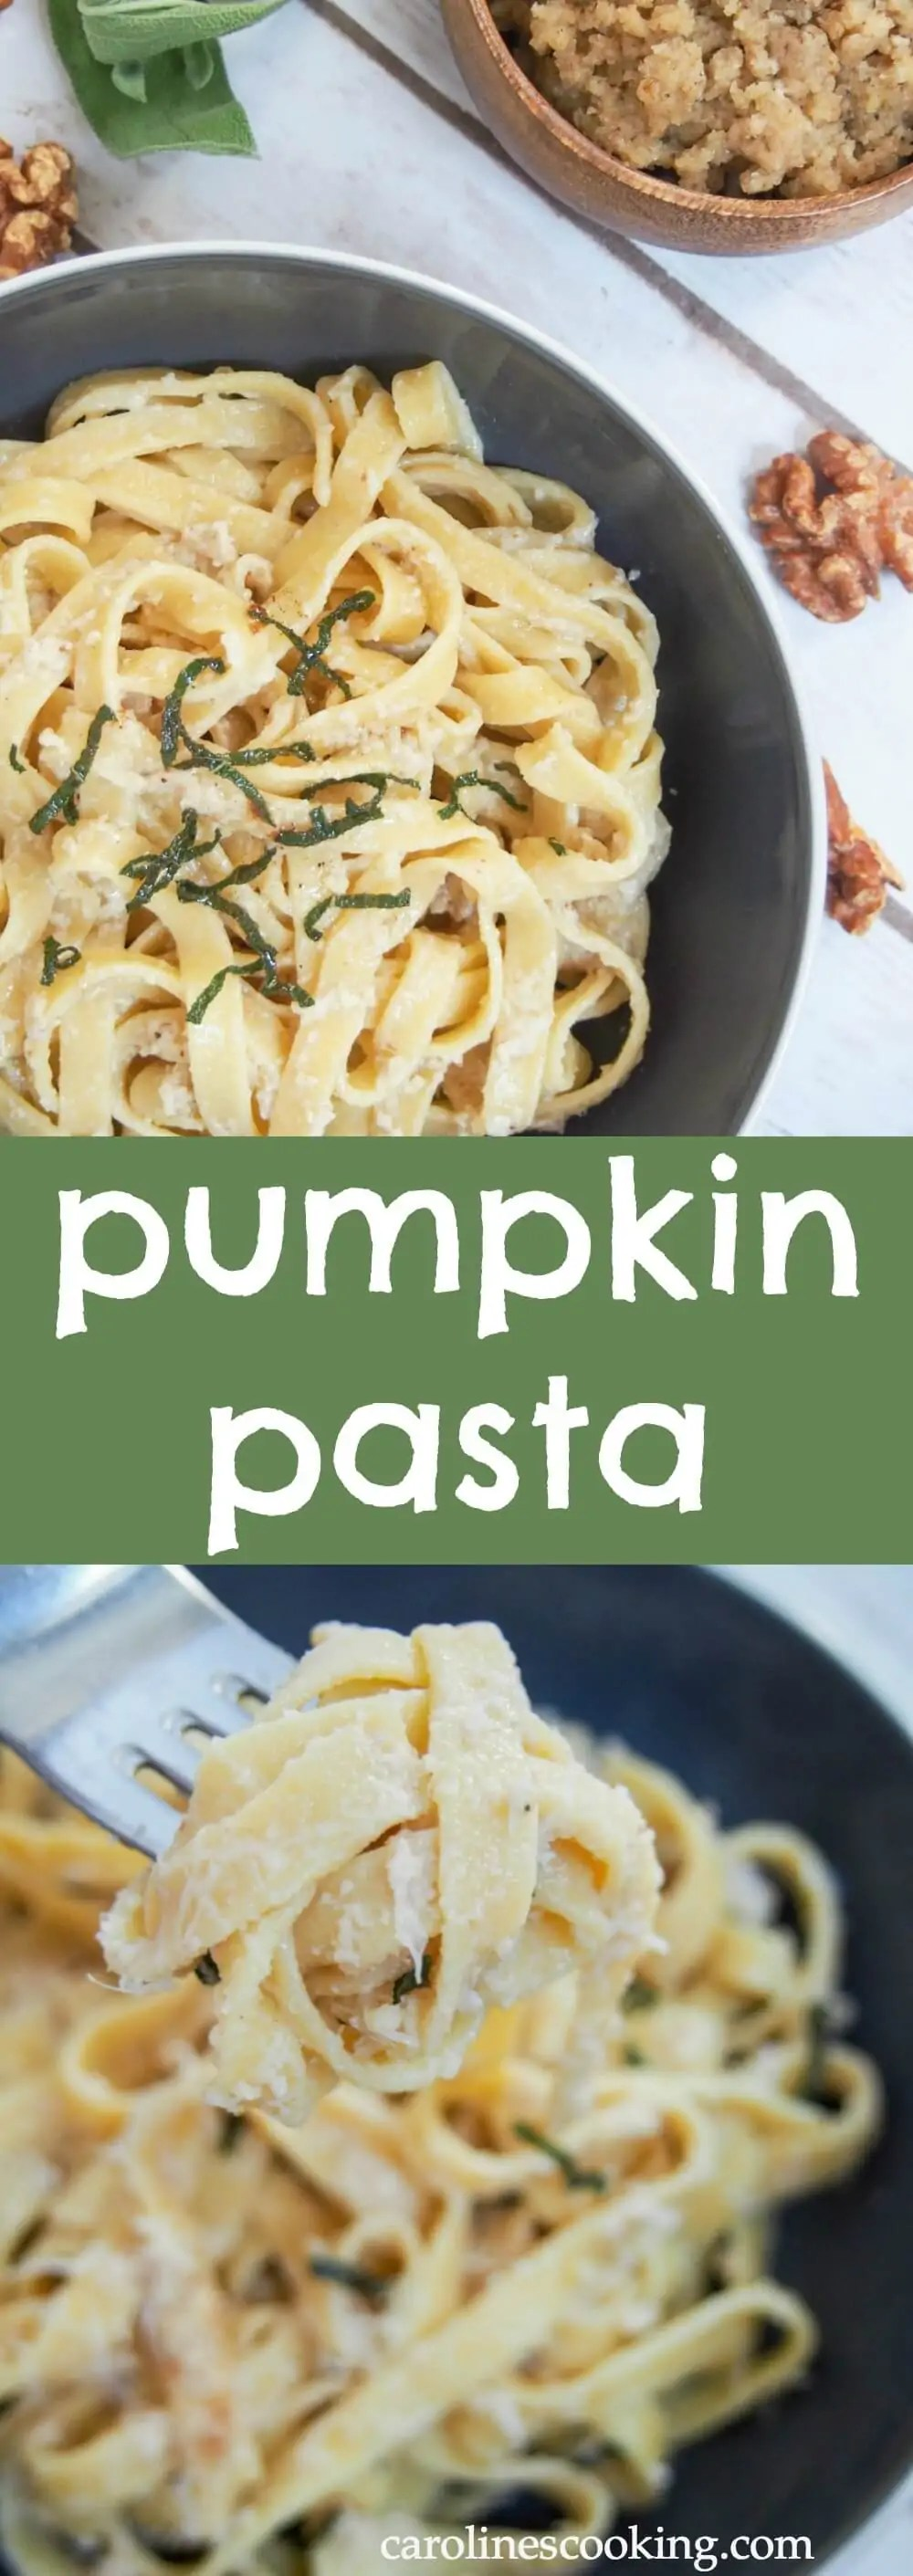 This pumpkin pasta is a delicious way to enjoy a touch of fall in homemade pasta with real pumpkin in the dough. If you're a pasta fan, you'll be blown away at how good it can taste.